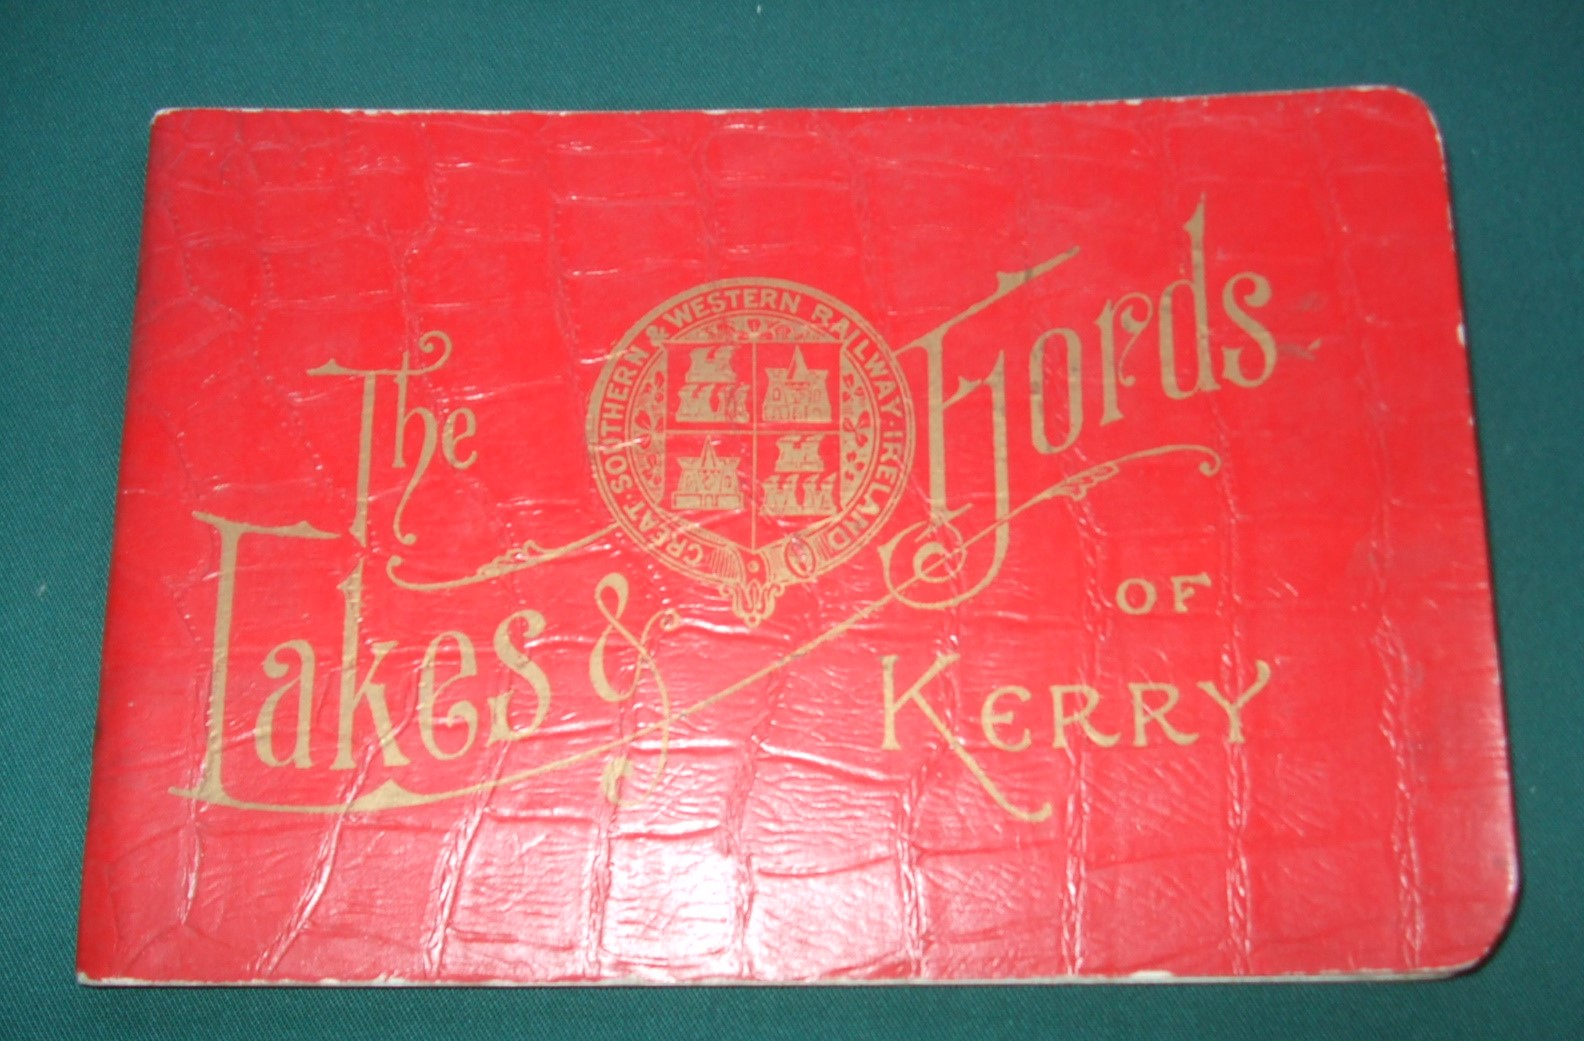 Image for The lakes and fjords of Kerry : the grand Atlantic coast tour to Killarney, Valencia, Waterville, Parknasilla, and Kenmare.